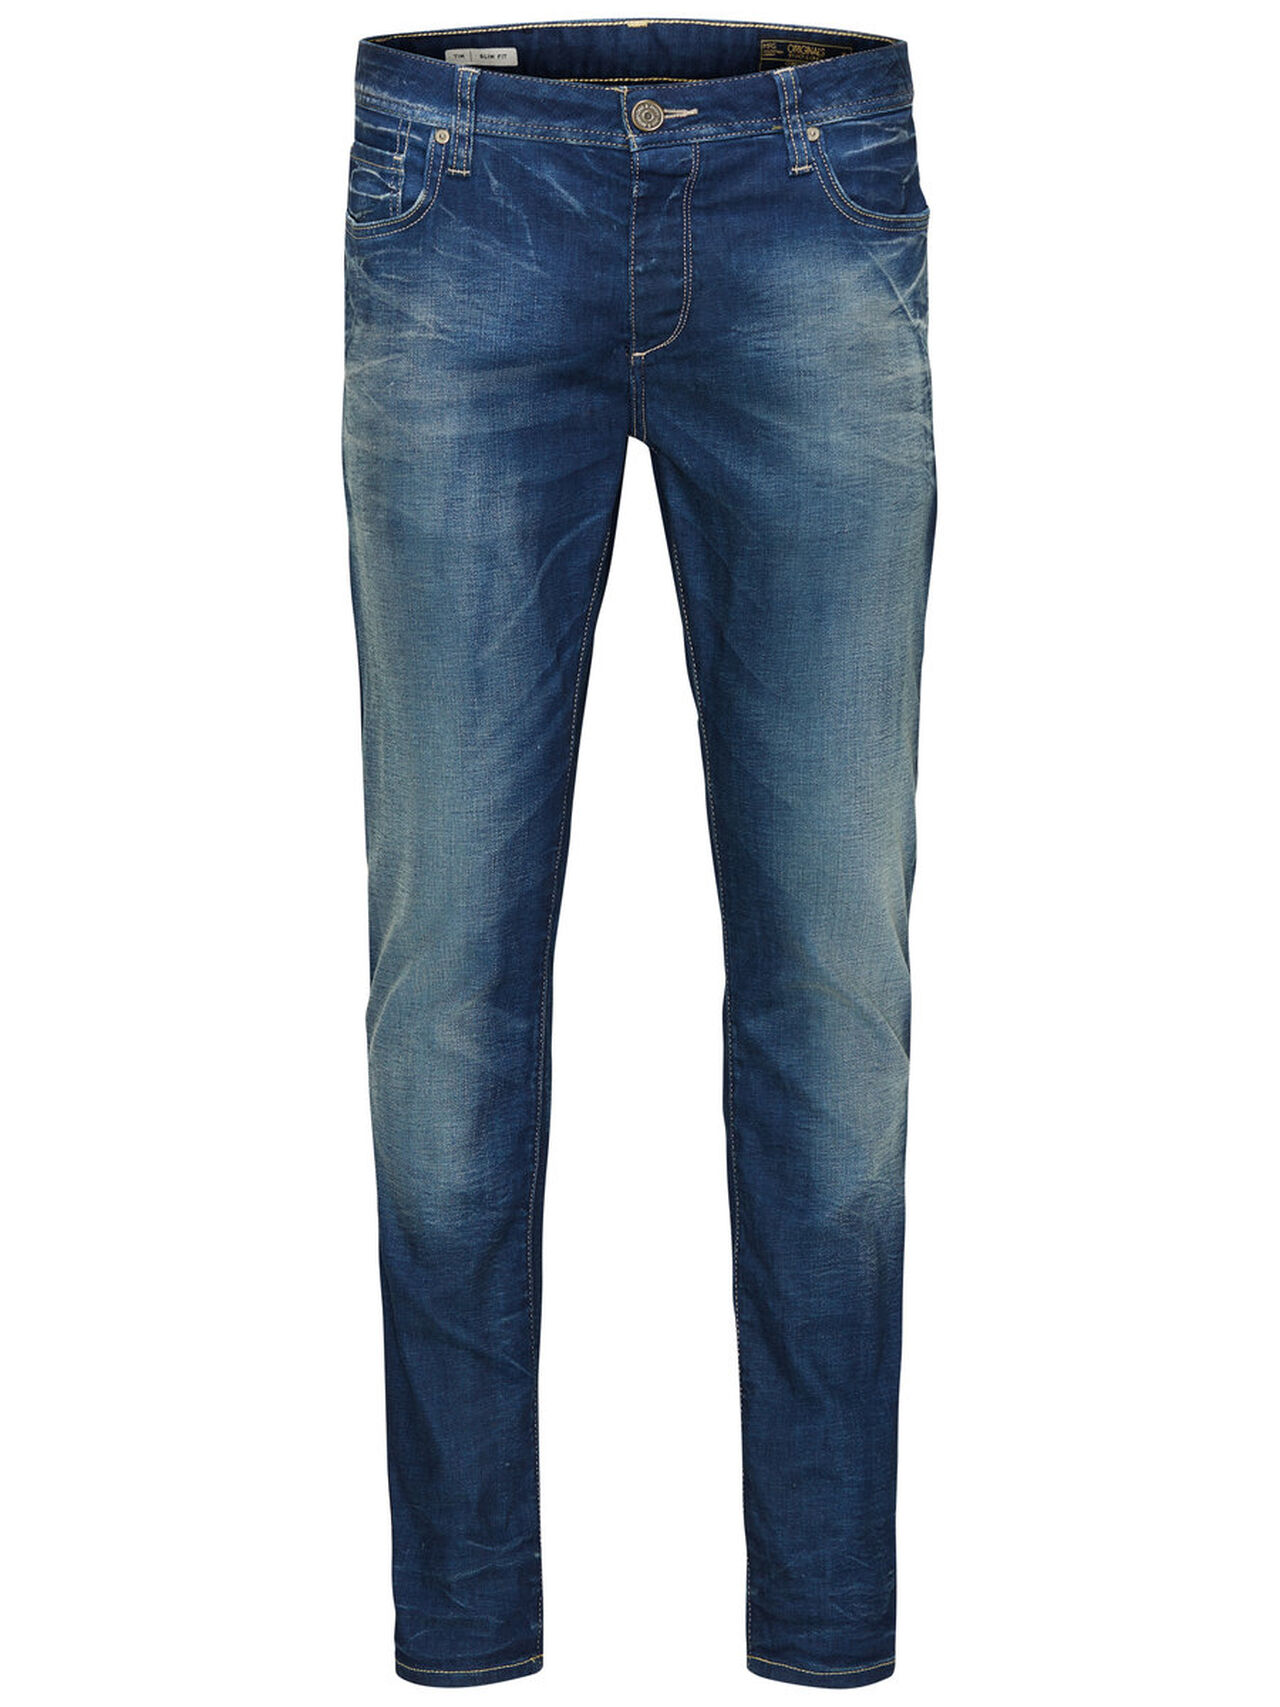 new design super popular huge sale JACK & JONES TIM ORIGINAL JOS 919 SLIM FIT JEANS